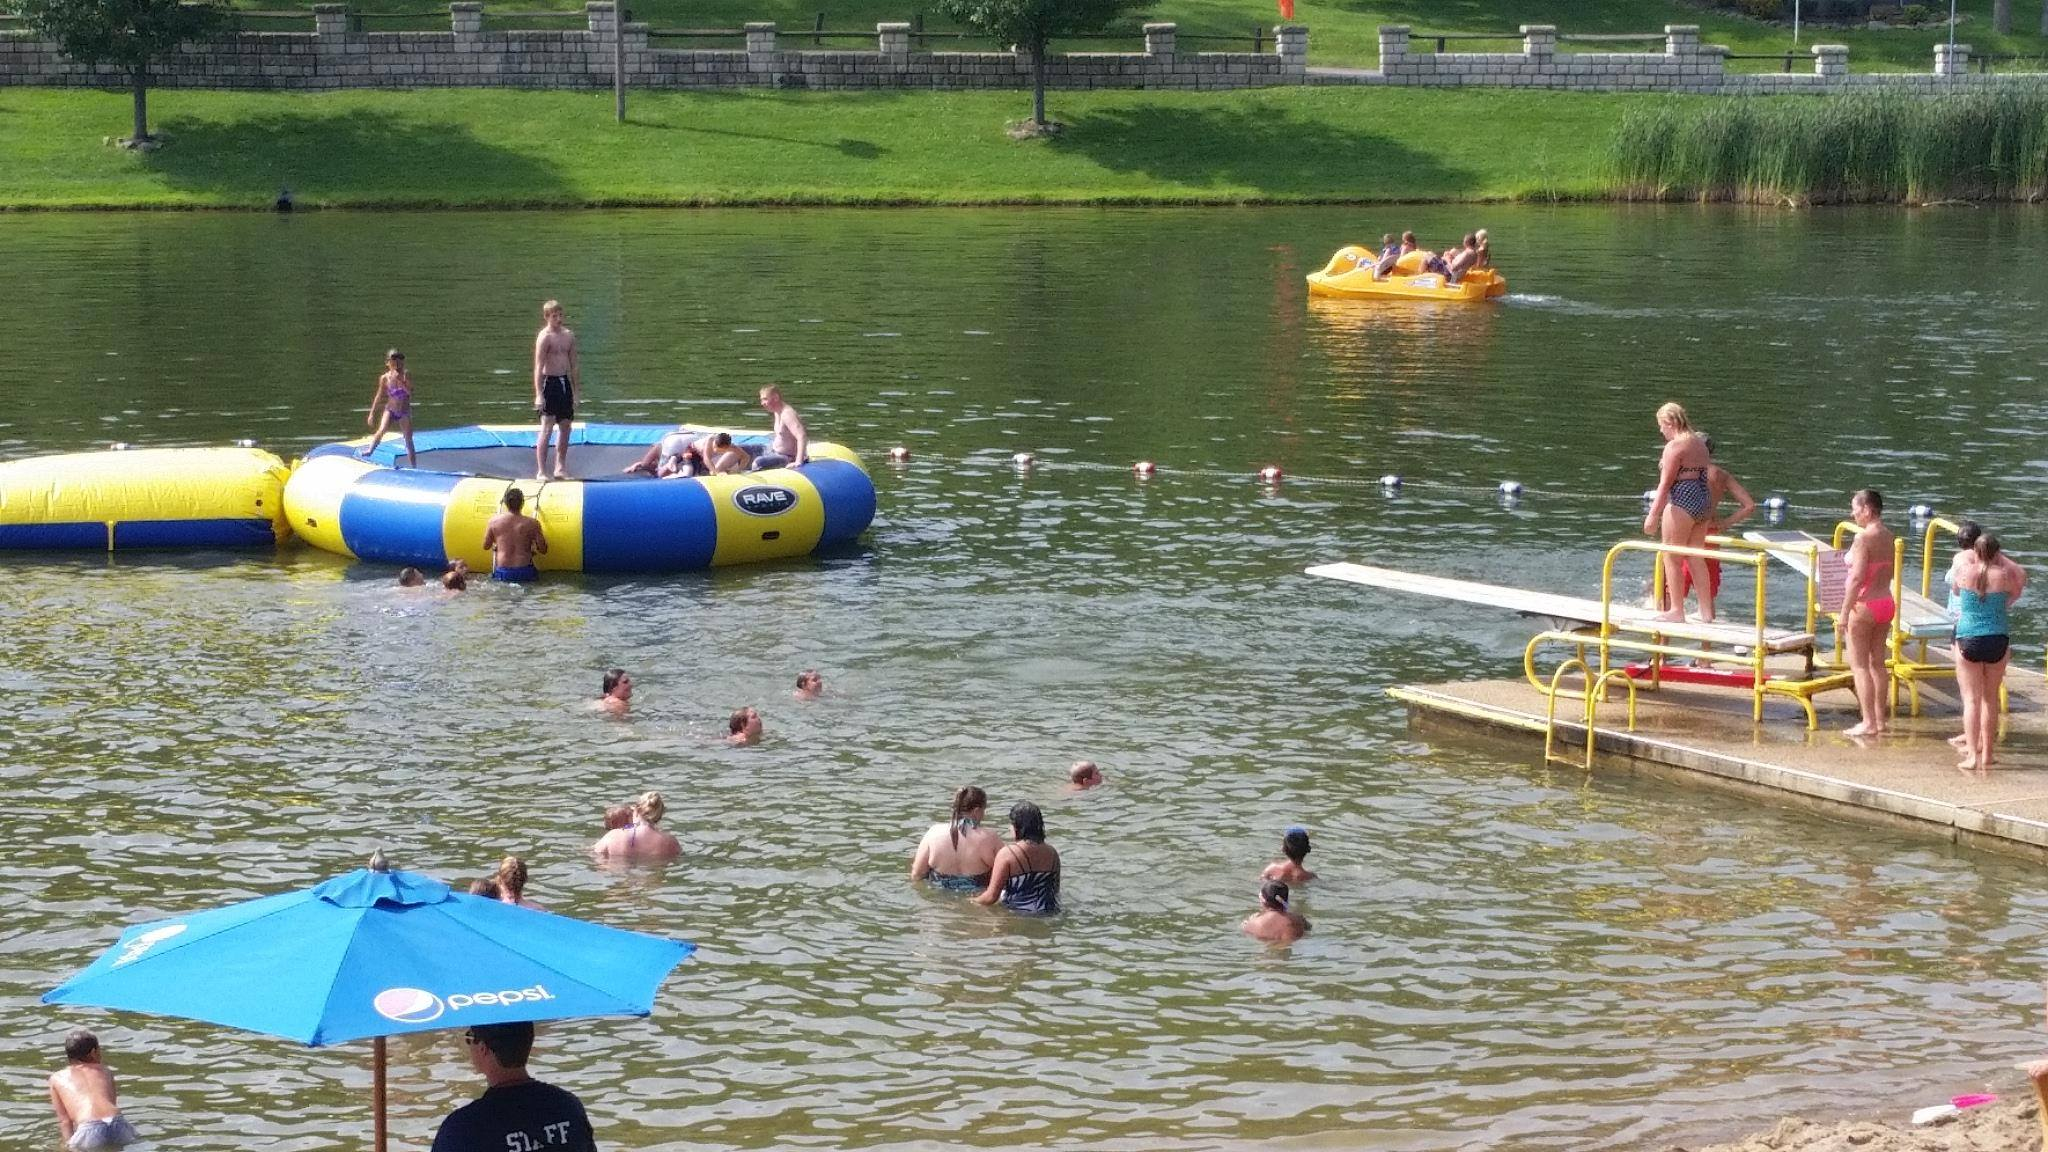 Many people, families, and kids playing in the lake at Wood's Tall Timber Resort